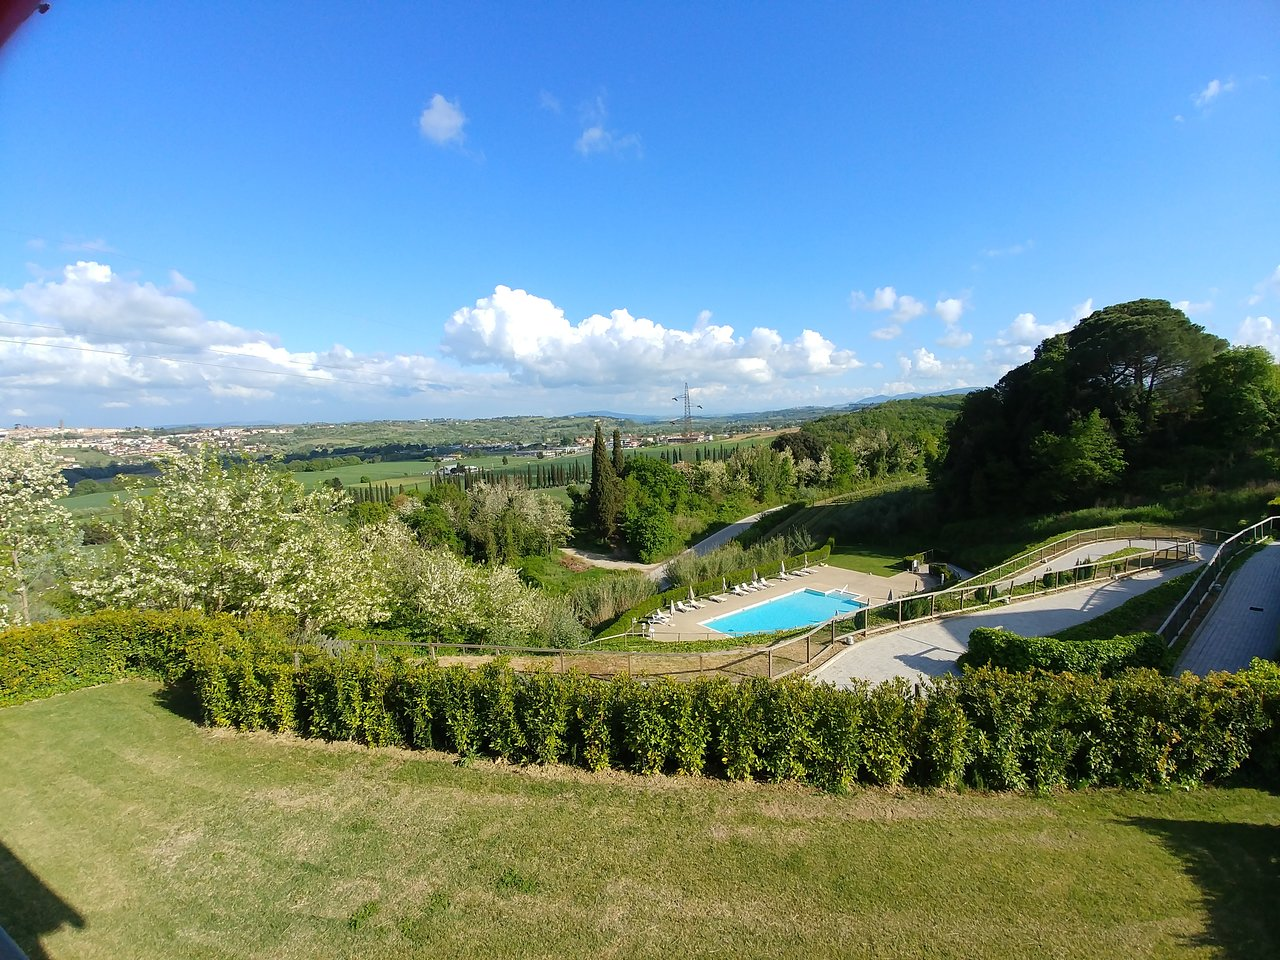 Hilton Grand Vacations Club at Borgo alle Vigne Outside View